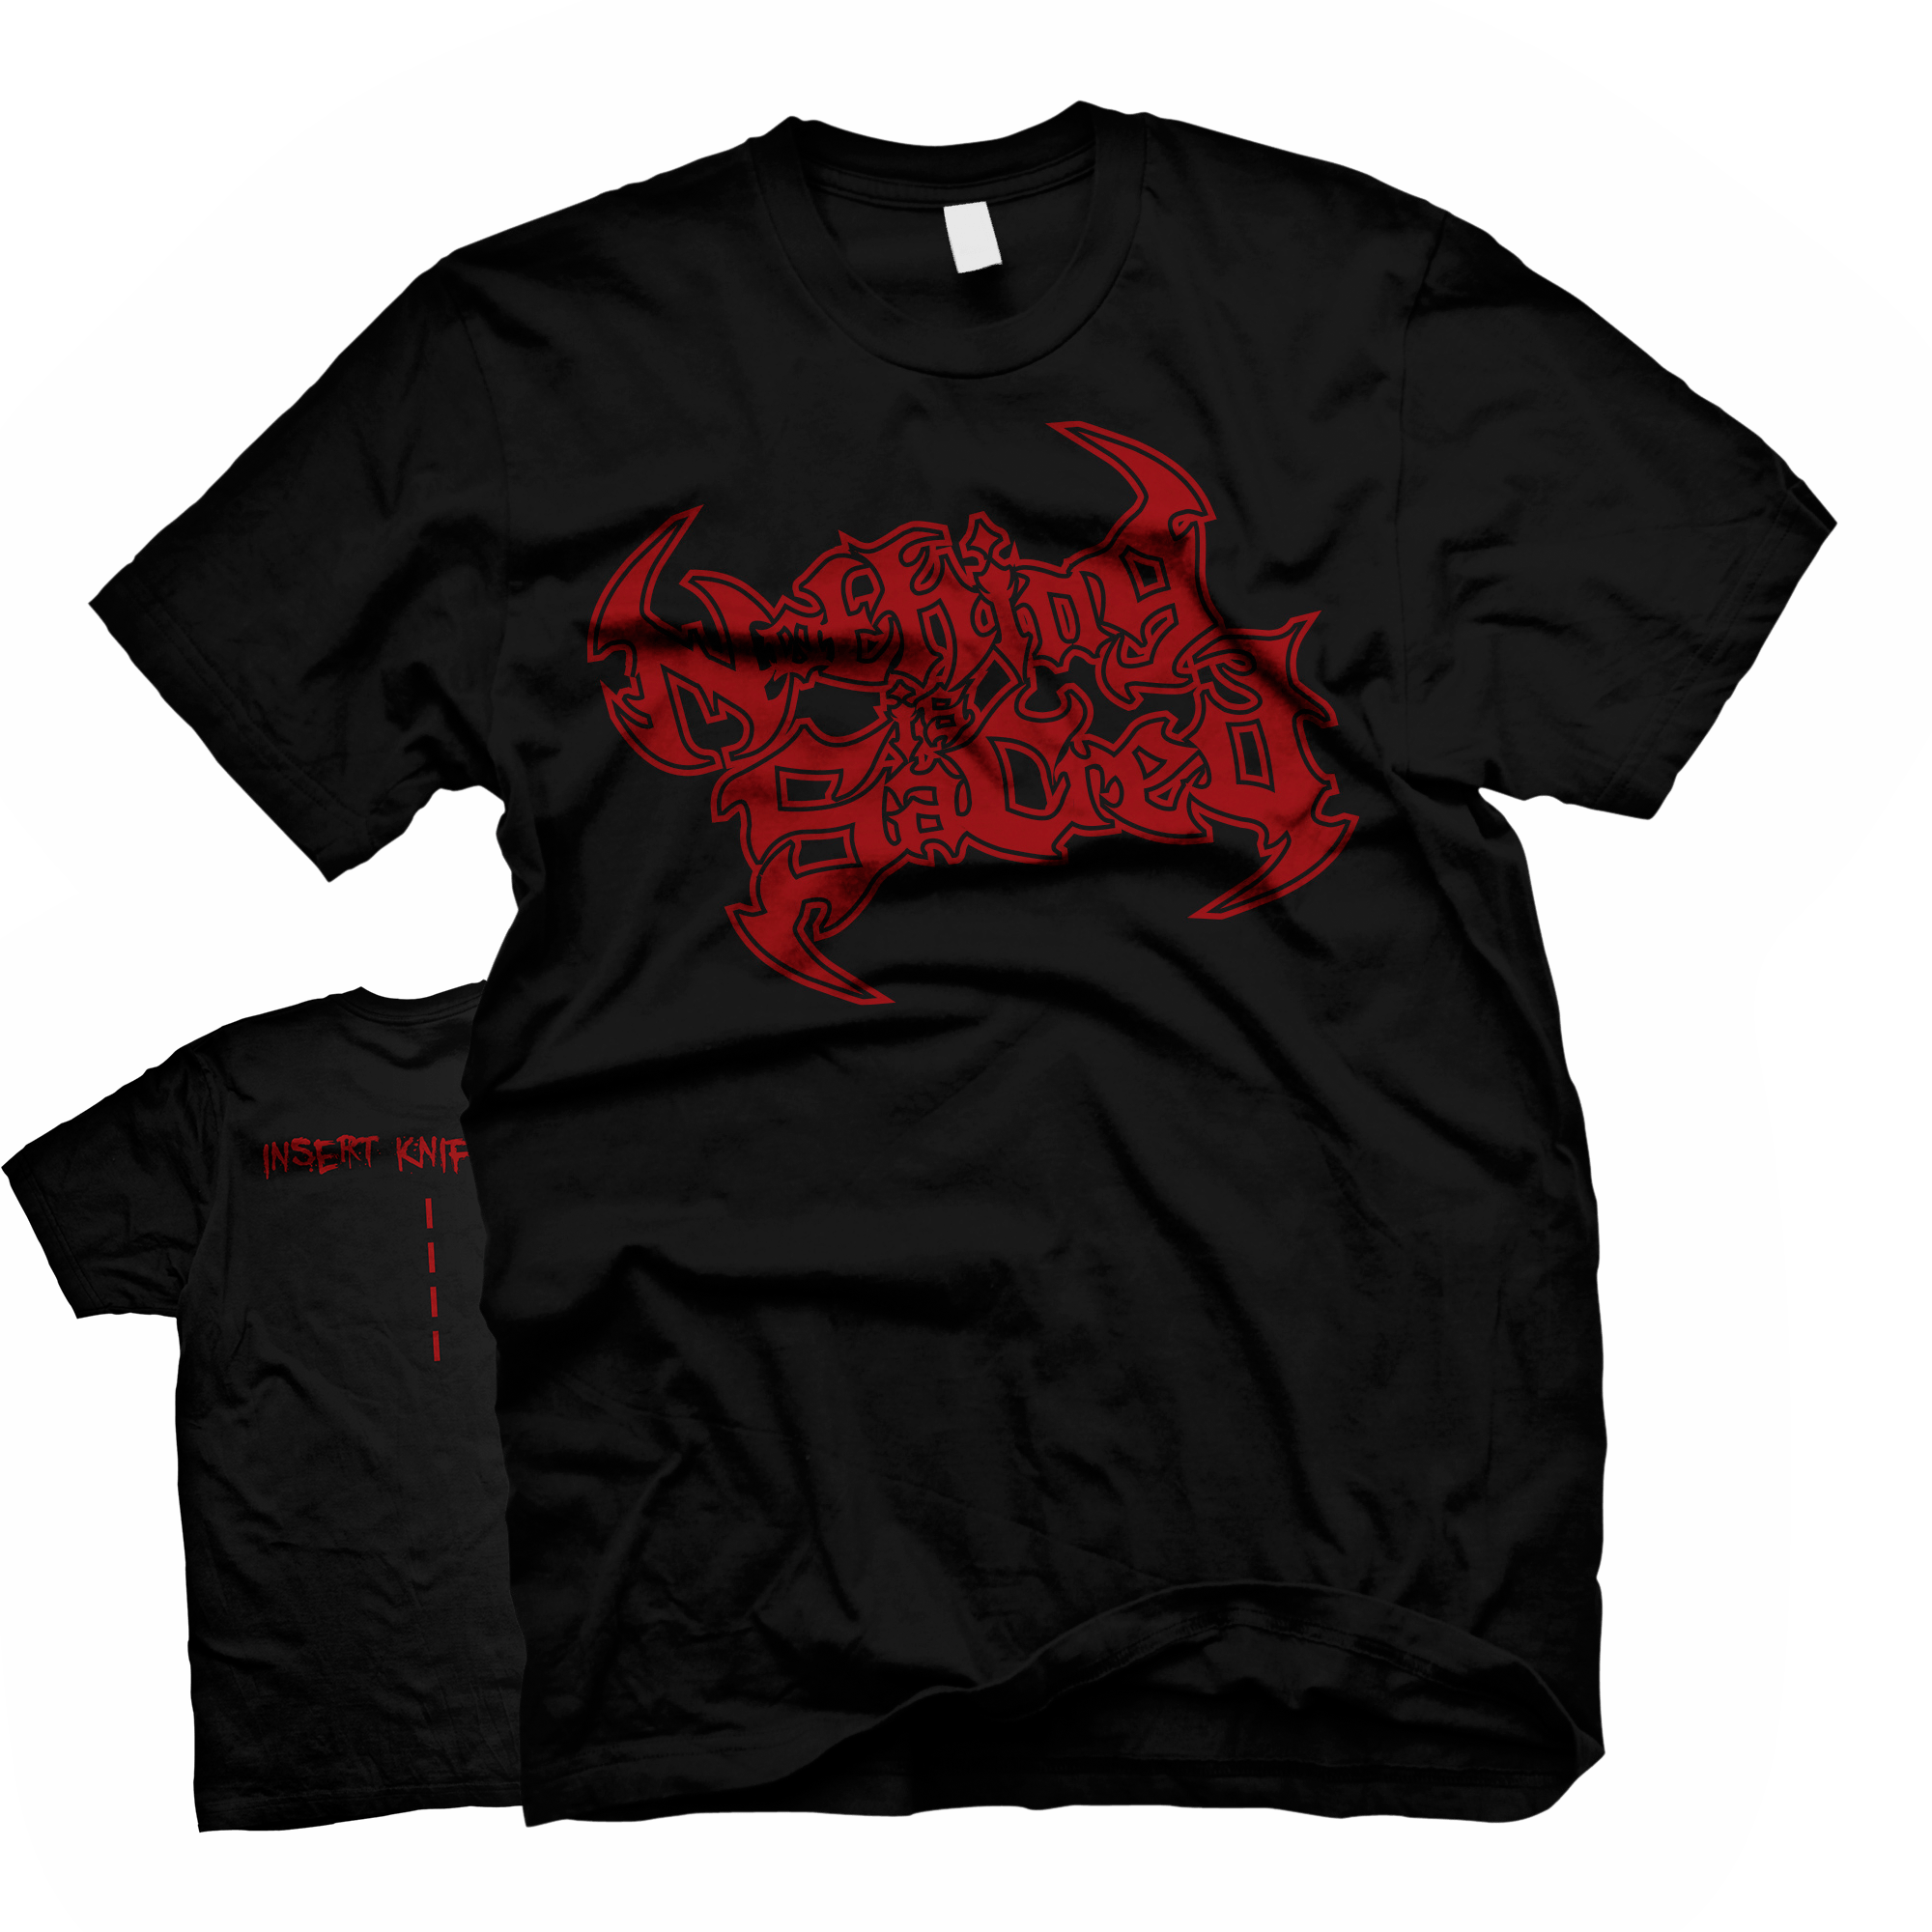 Nothing is Sacred - Backstabbers Shirt